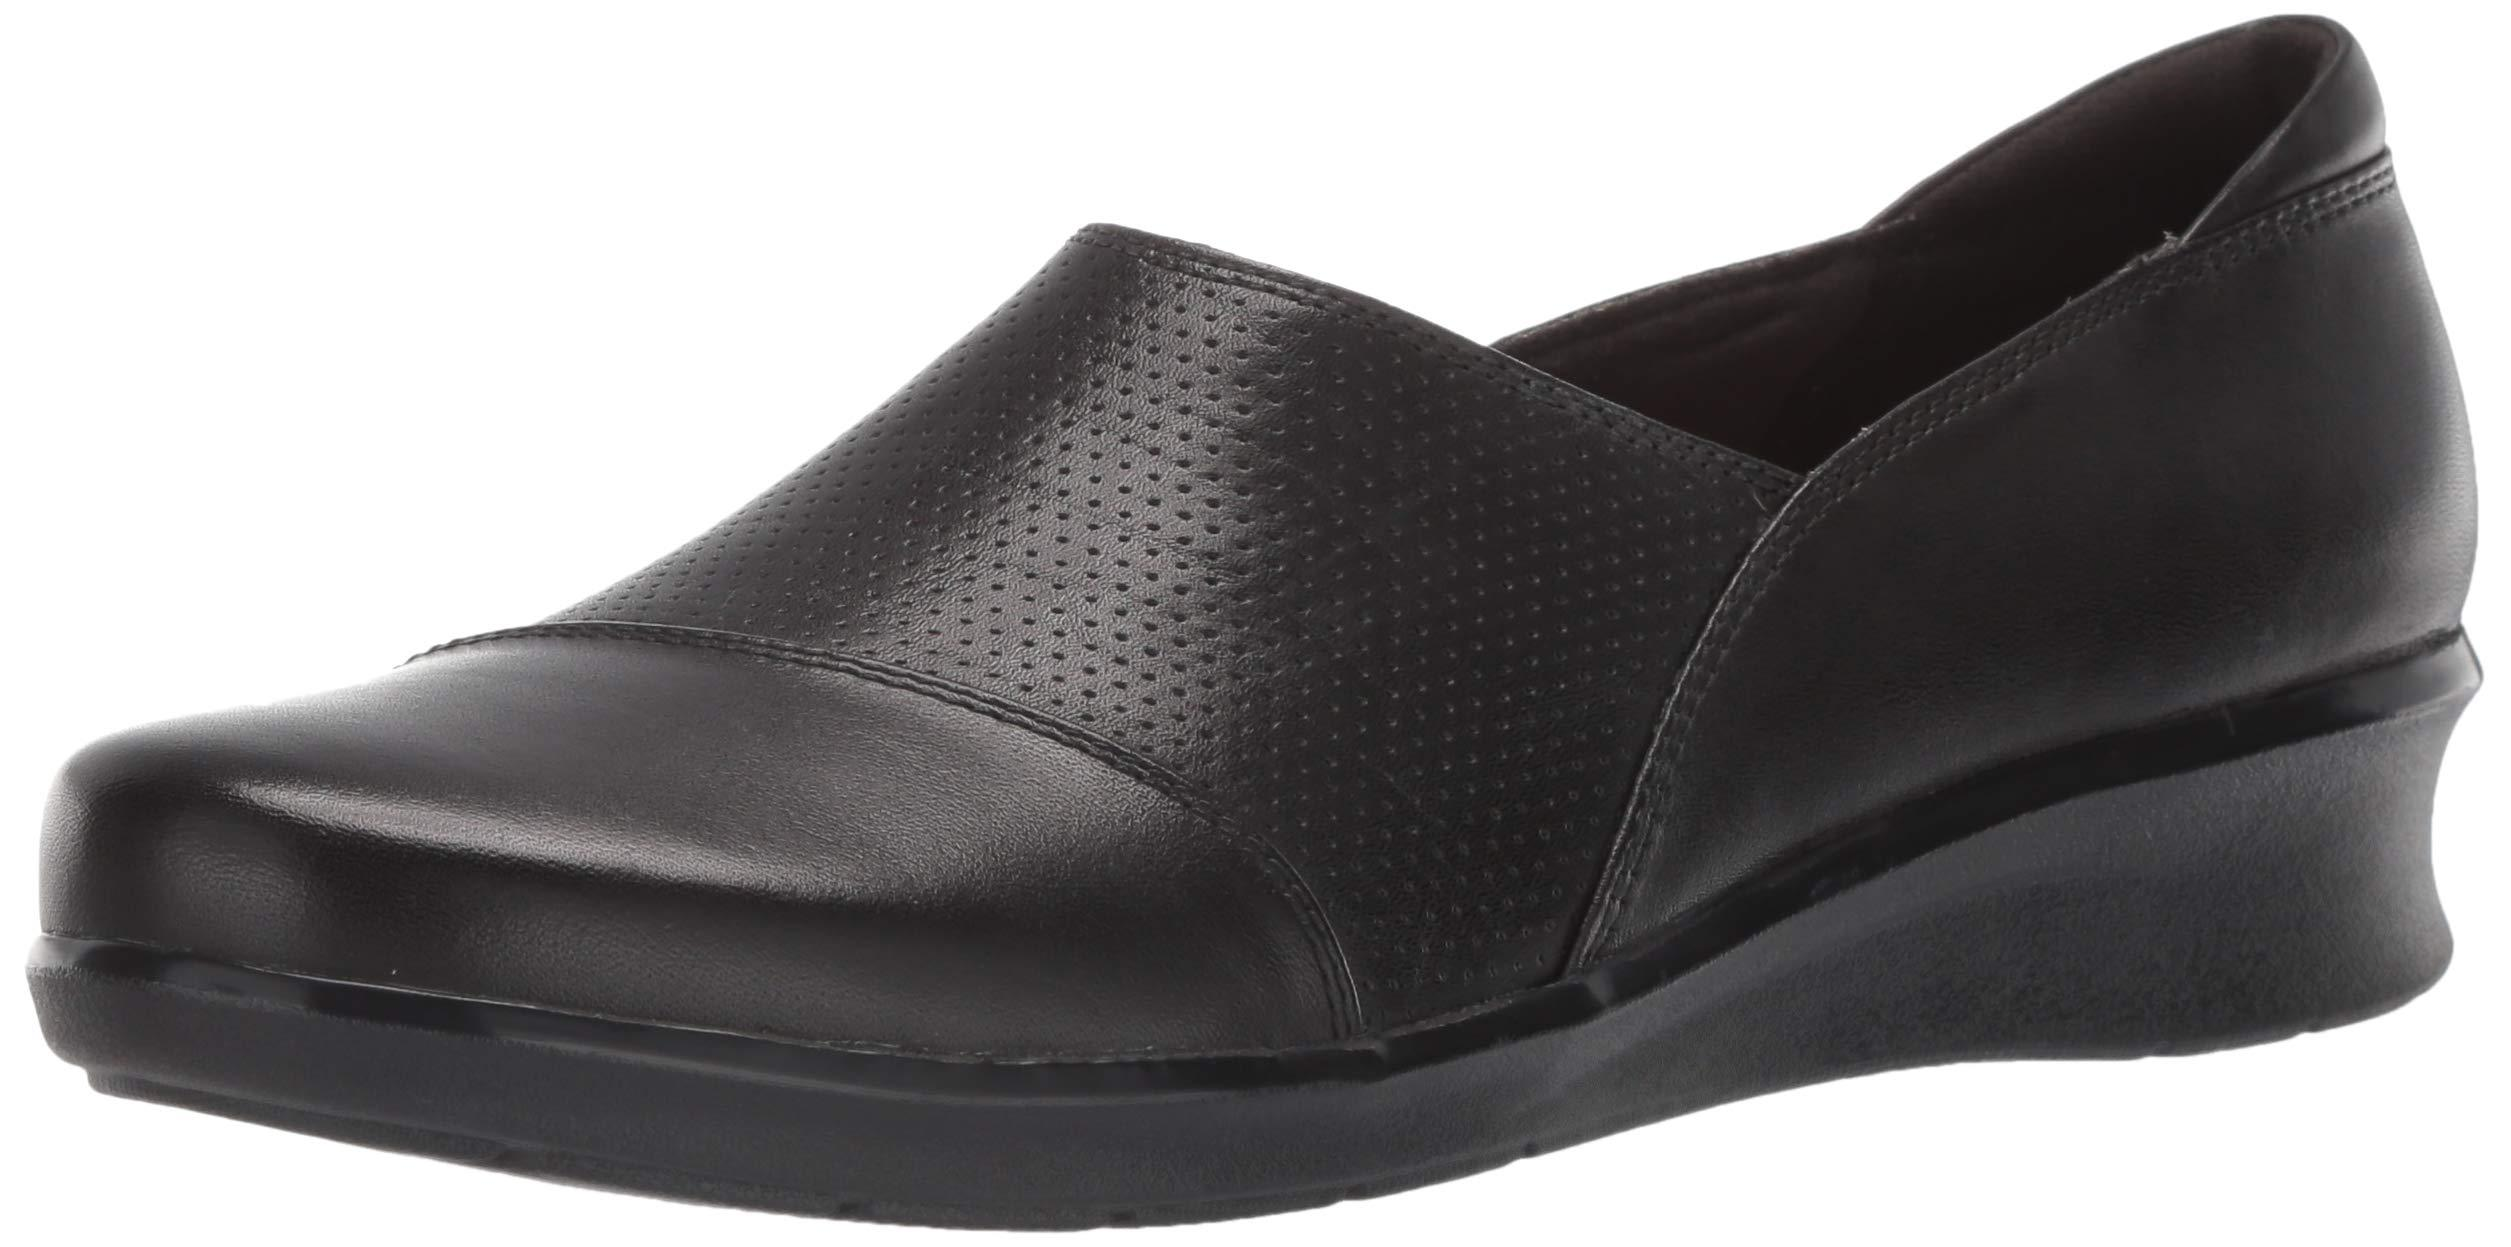 size 10 Medium NEW $84 Womens Clarks Emslie Chara Shoes